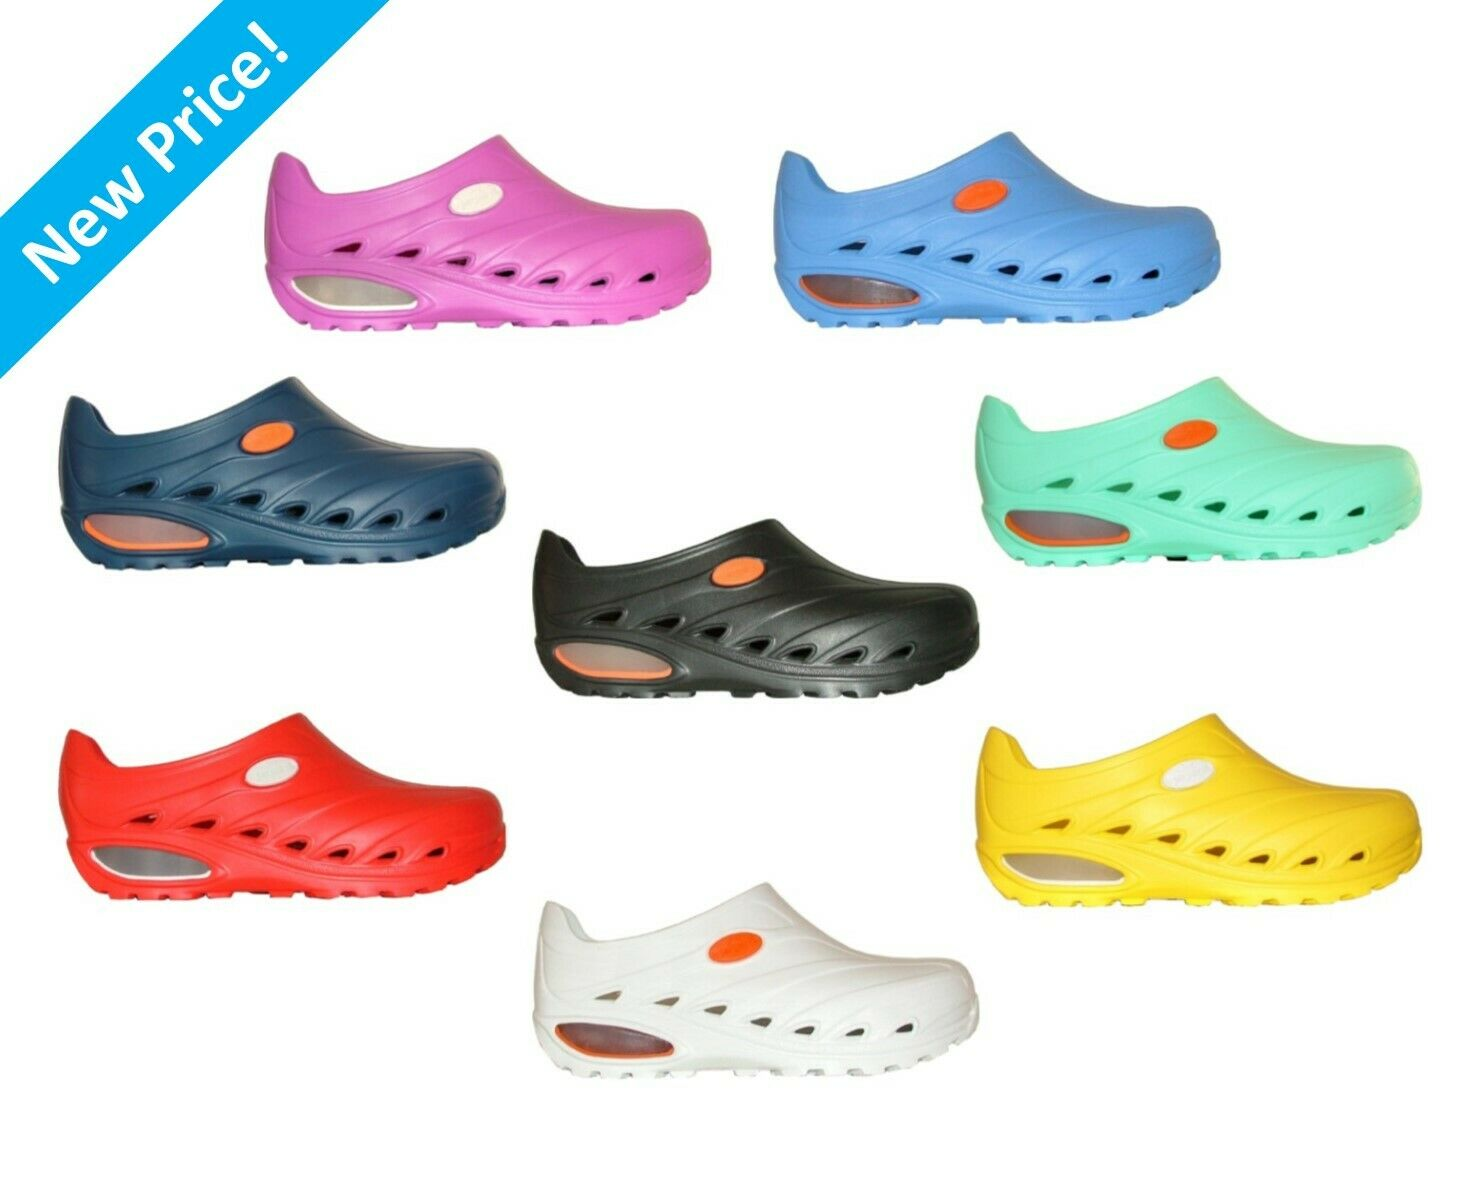 Dynamic Washable Anti-slip & Anti-static Nursing shoes -Healthcare Professionals